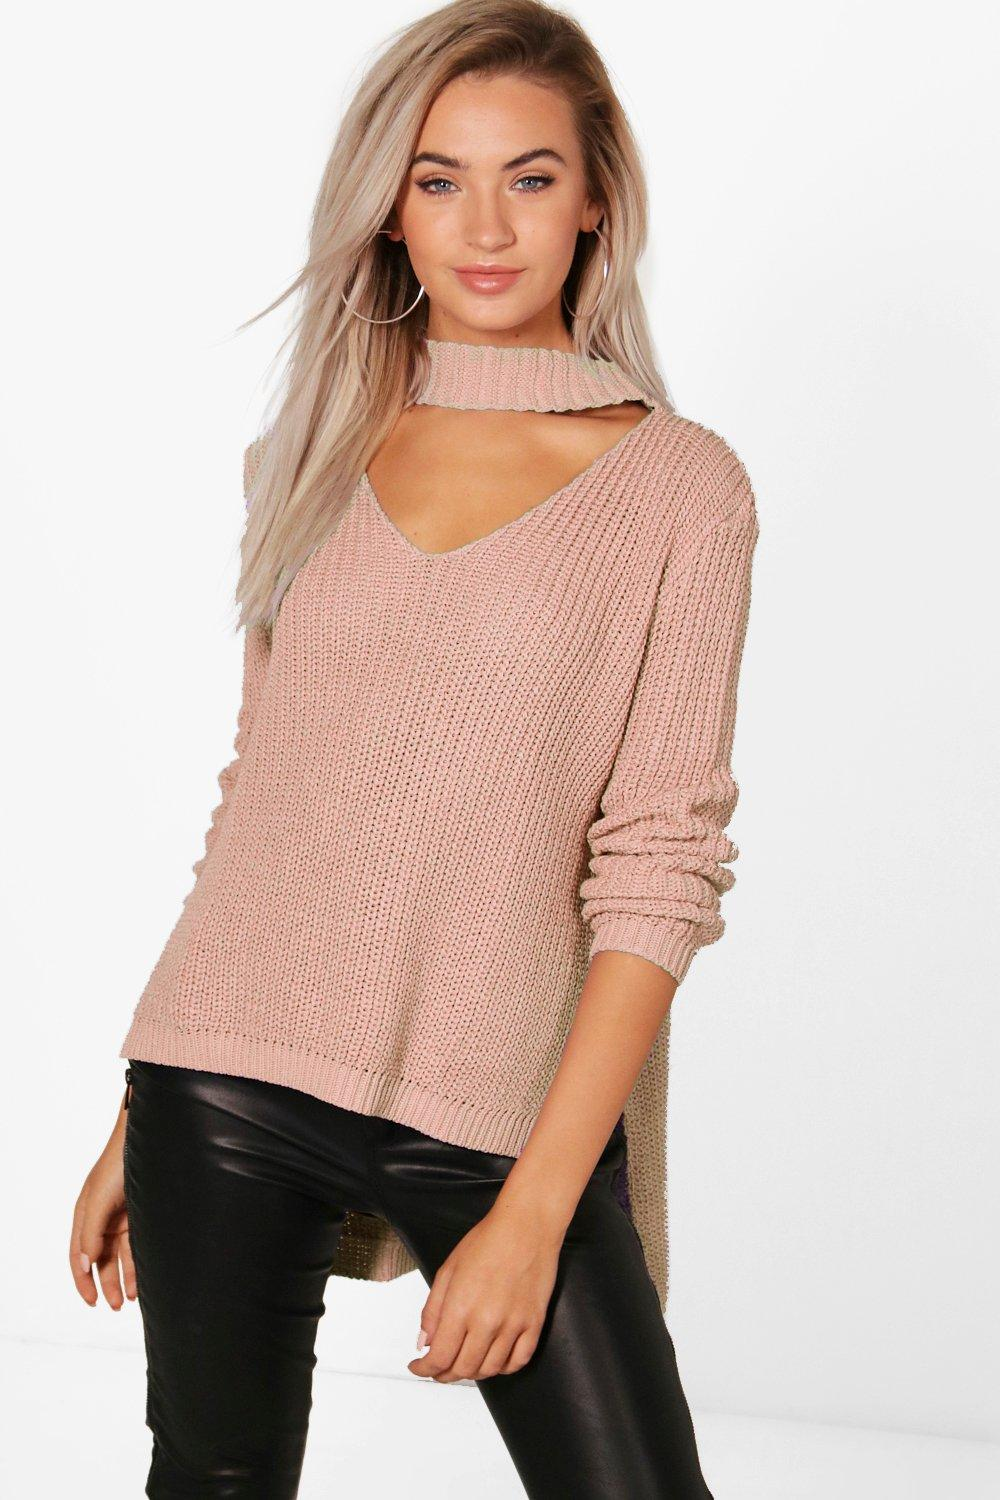 Sling on a chunky knit jumper for those slouch-on-the-sofa days, or wrap up in a boucle poncho jumper for those out-in-the-open days. Play it cool in a cold shoulder sweater, relax in an oversized cardigan, or dress to impress in a flute sleeve jumper.